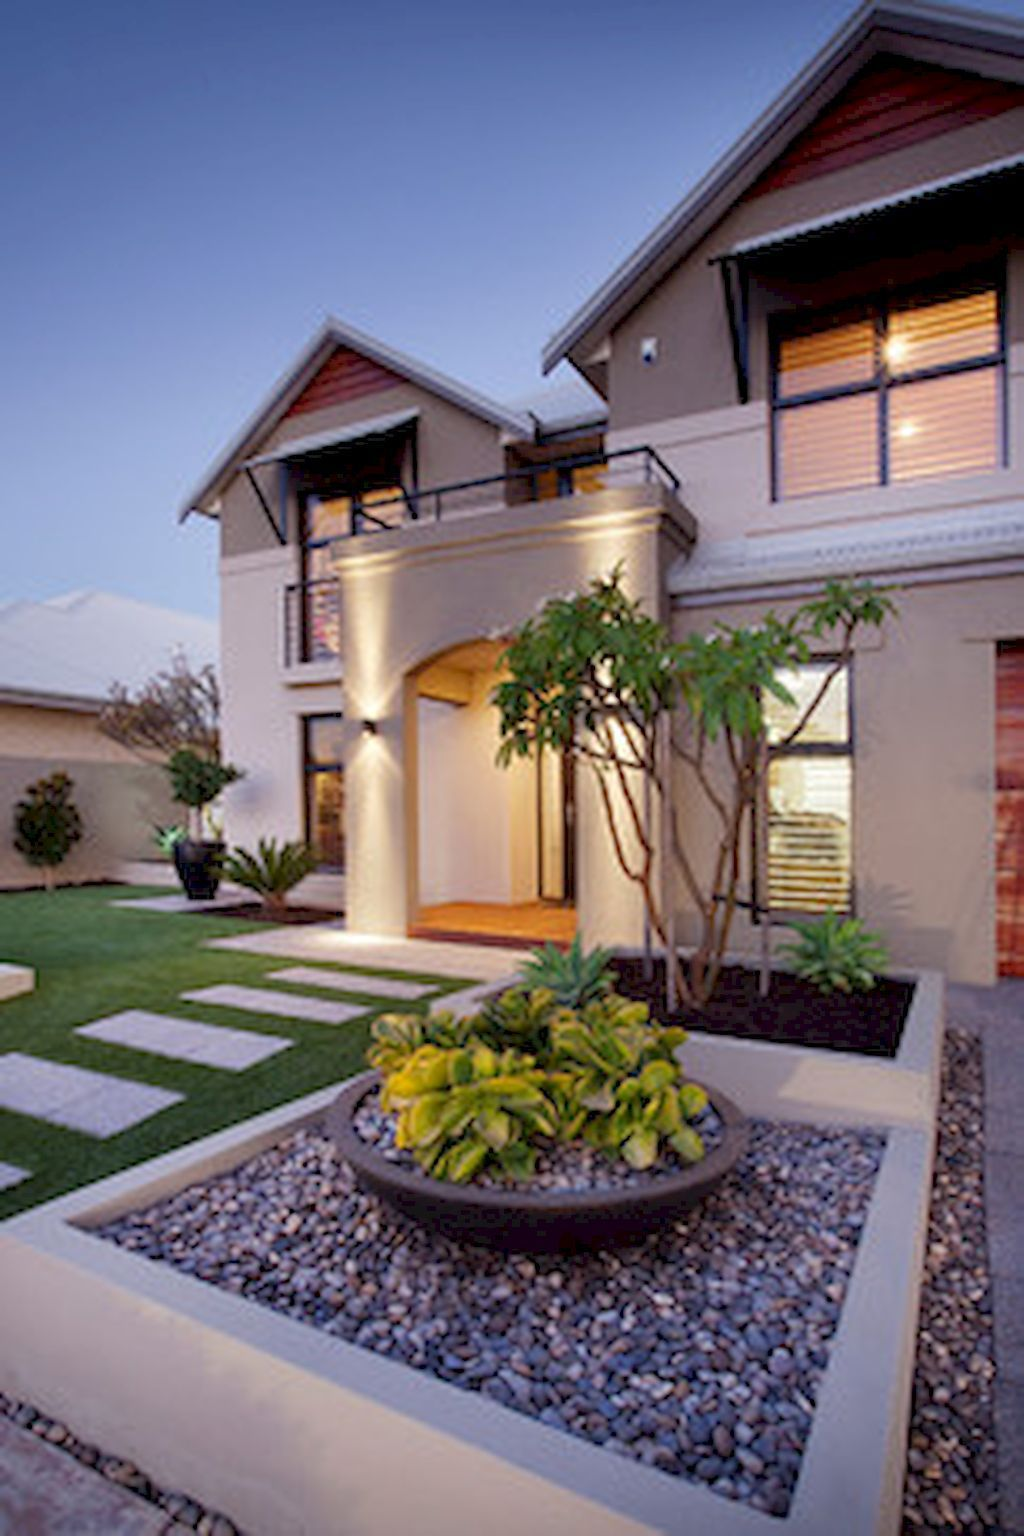 Cheap landscaping ideas for your front yard that will ... on Affordable Backyard Landscaping Ideas id=98211